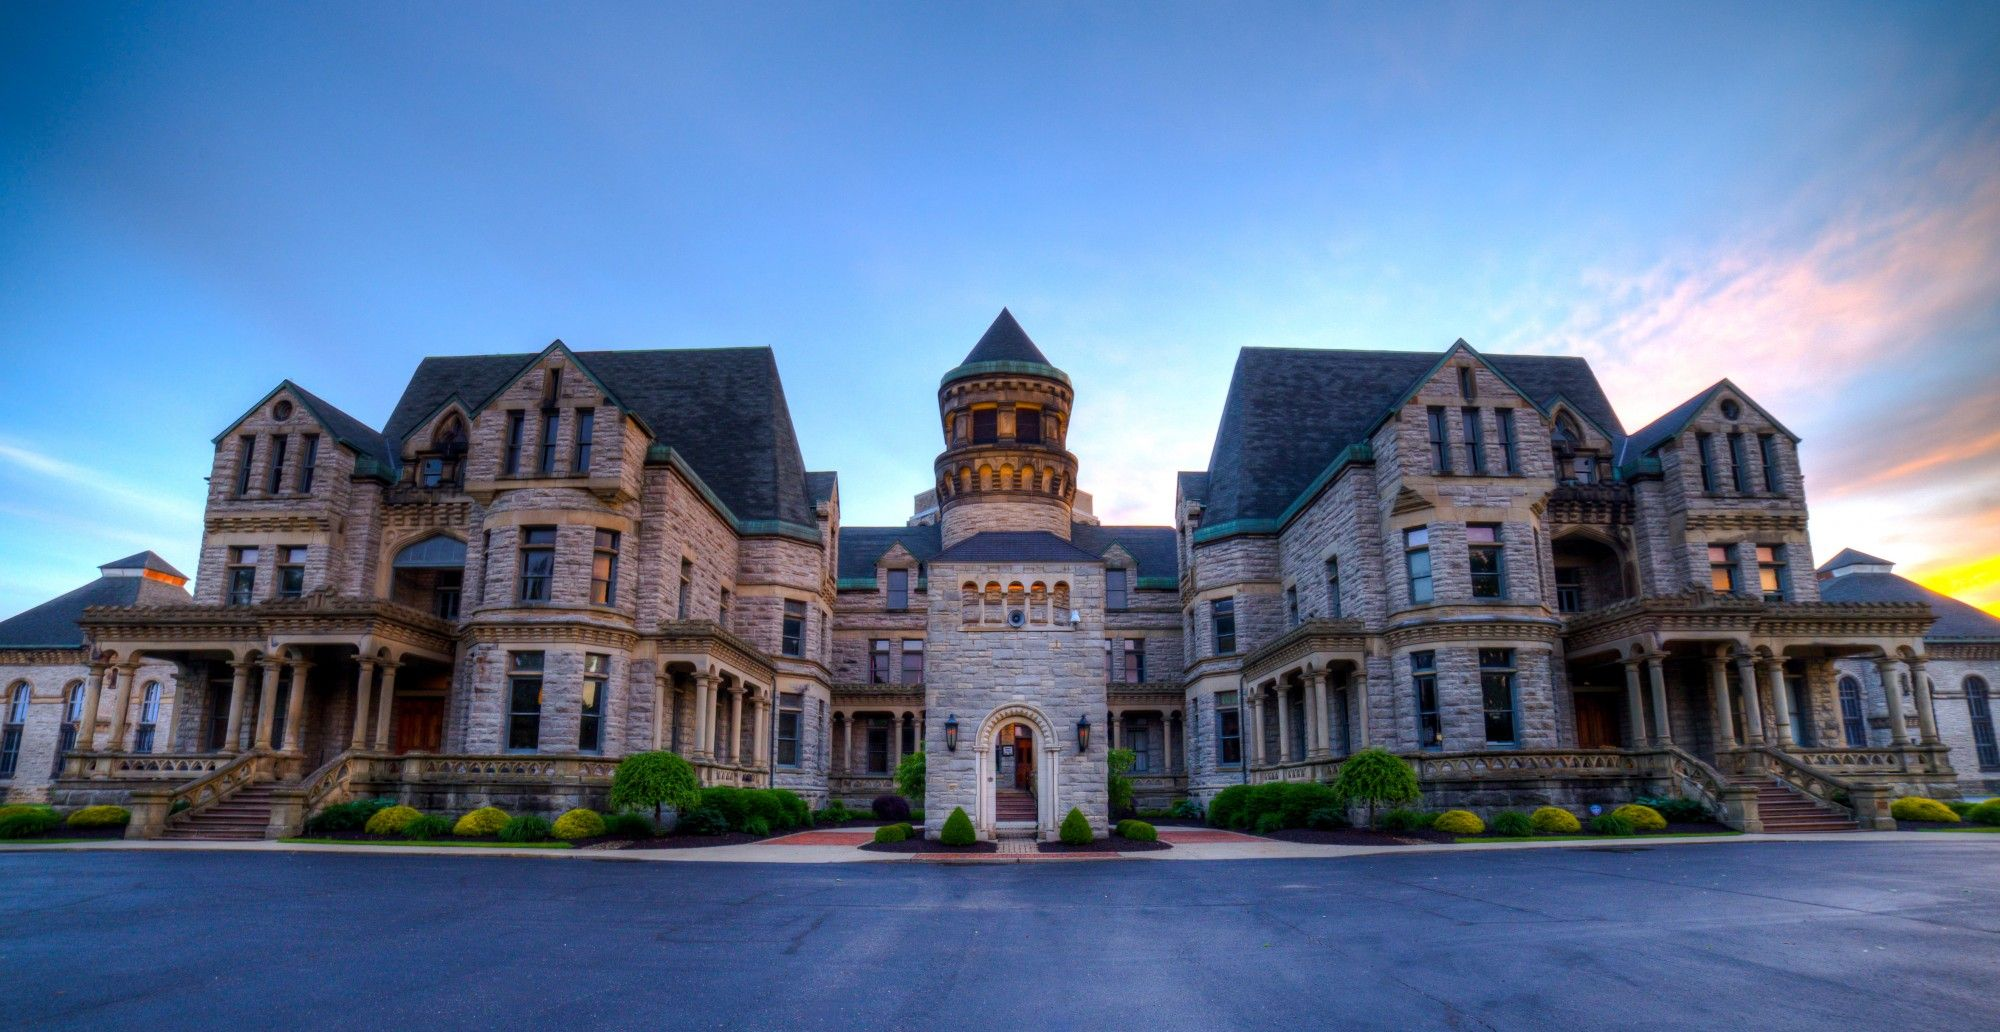 Mansfield Reformatory Preservation Society Inc. Fund